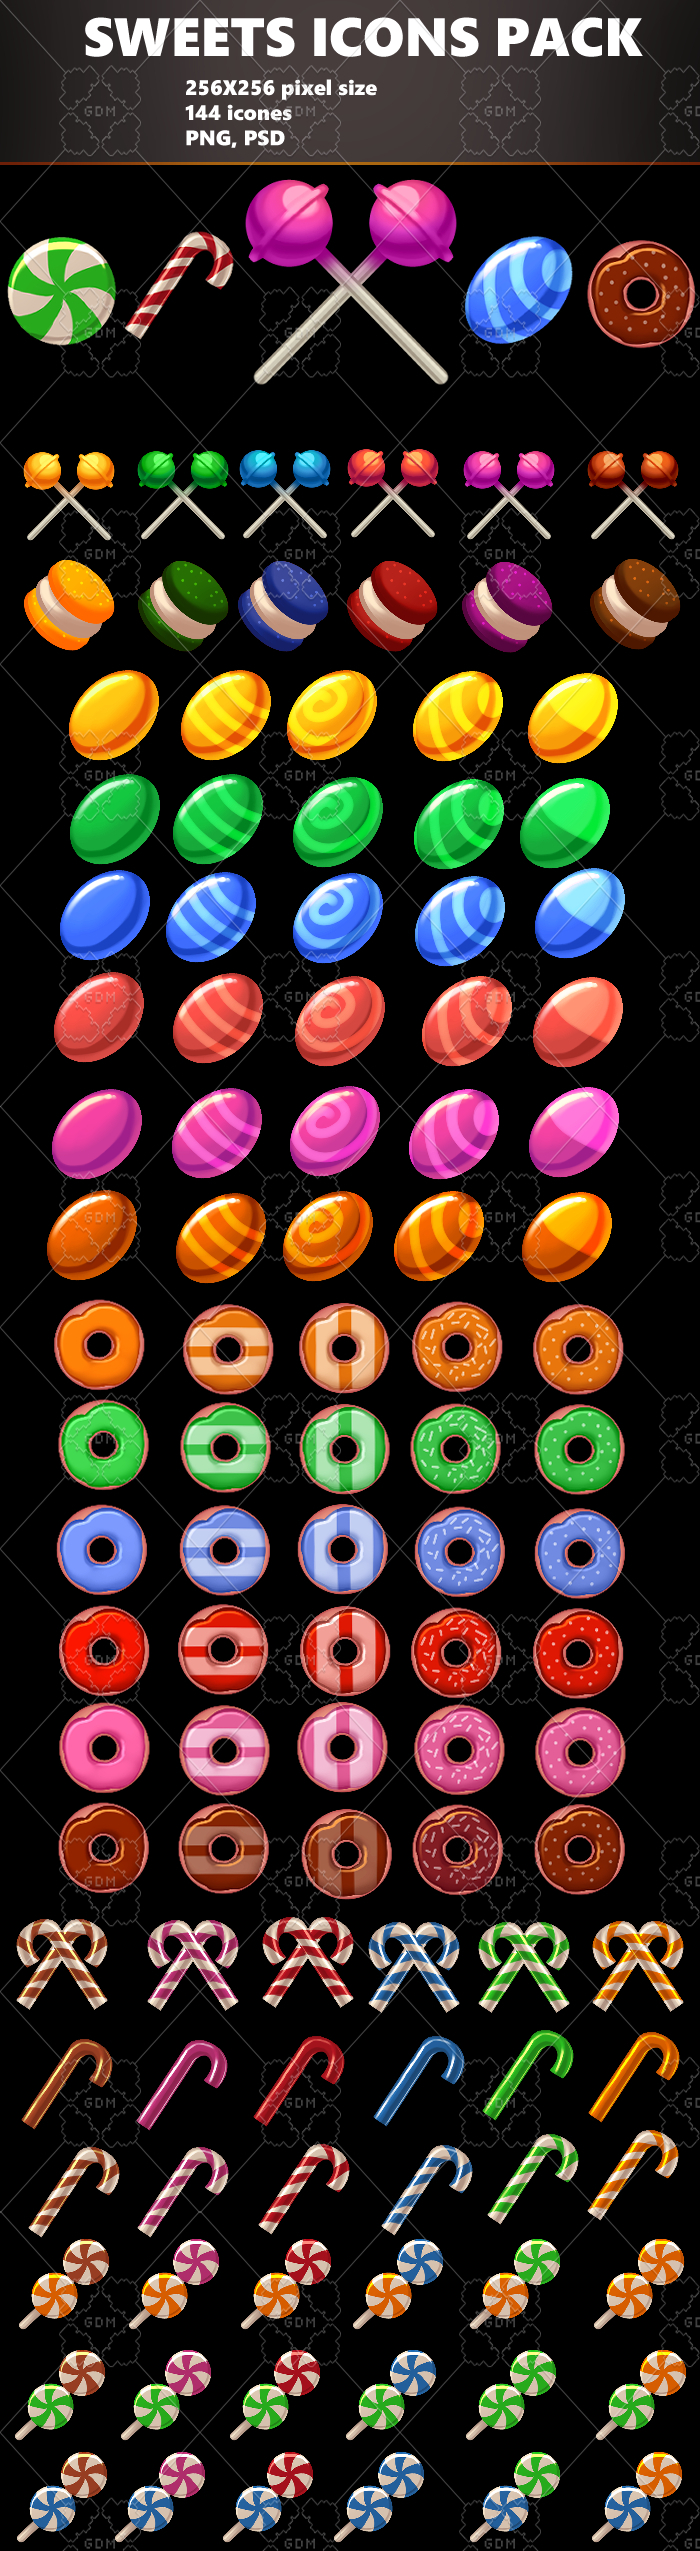 SWEETS ICONS PACK